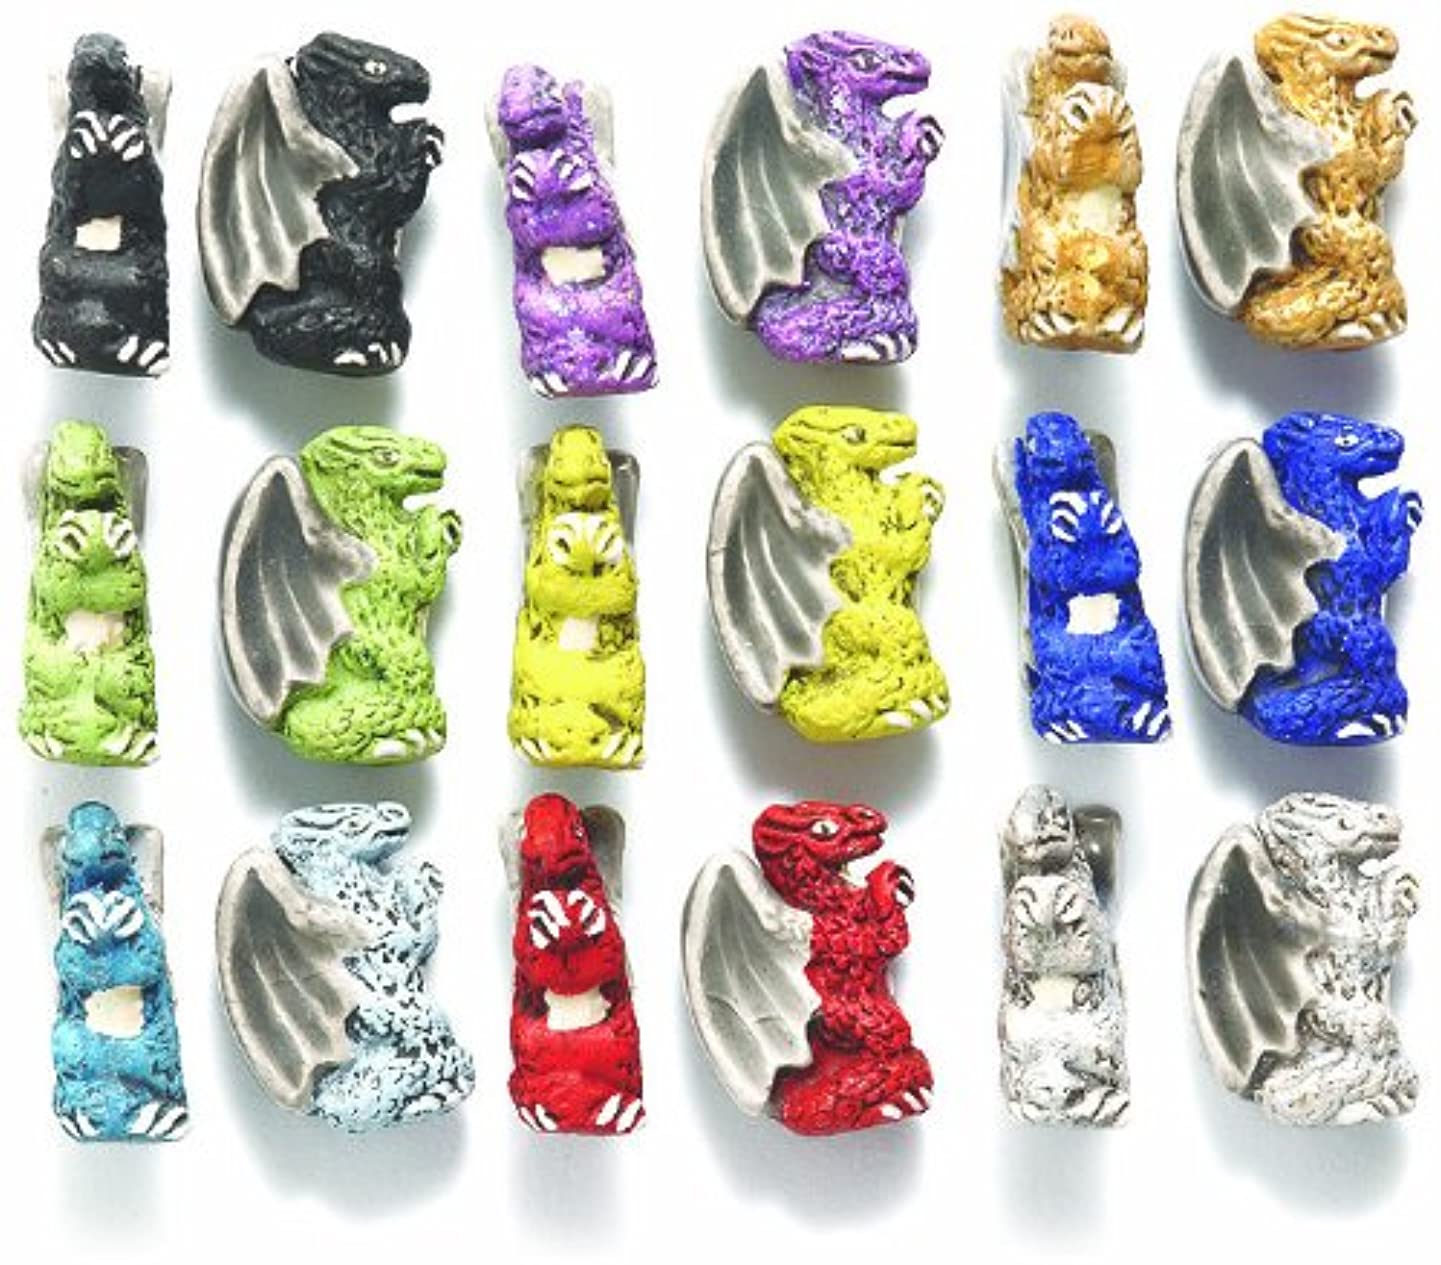 Peruvian Shipwreck Hand Crafted Ceramic Winged Dragon Mix Beads, 10 by 15mm, Assorted, 15-mm